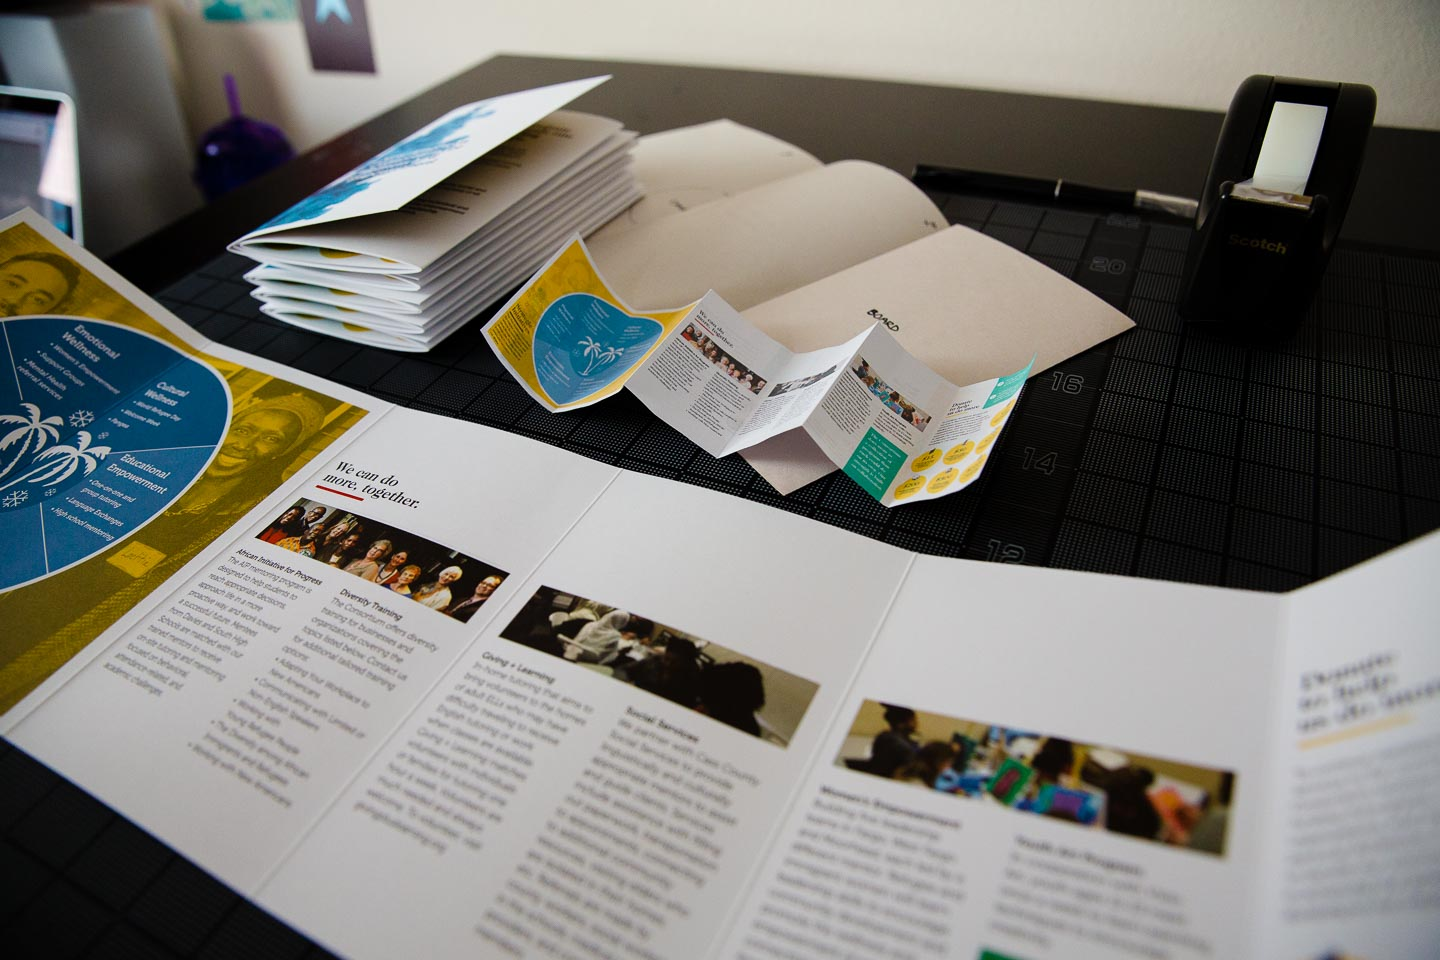 Brochure open below stack of folded brochures and miniature prototype on black gridded background